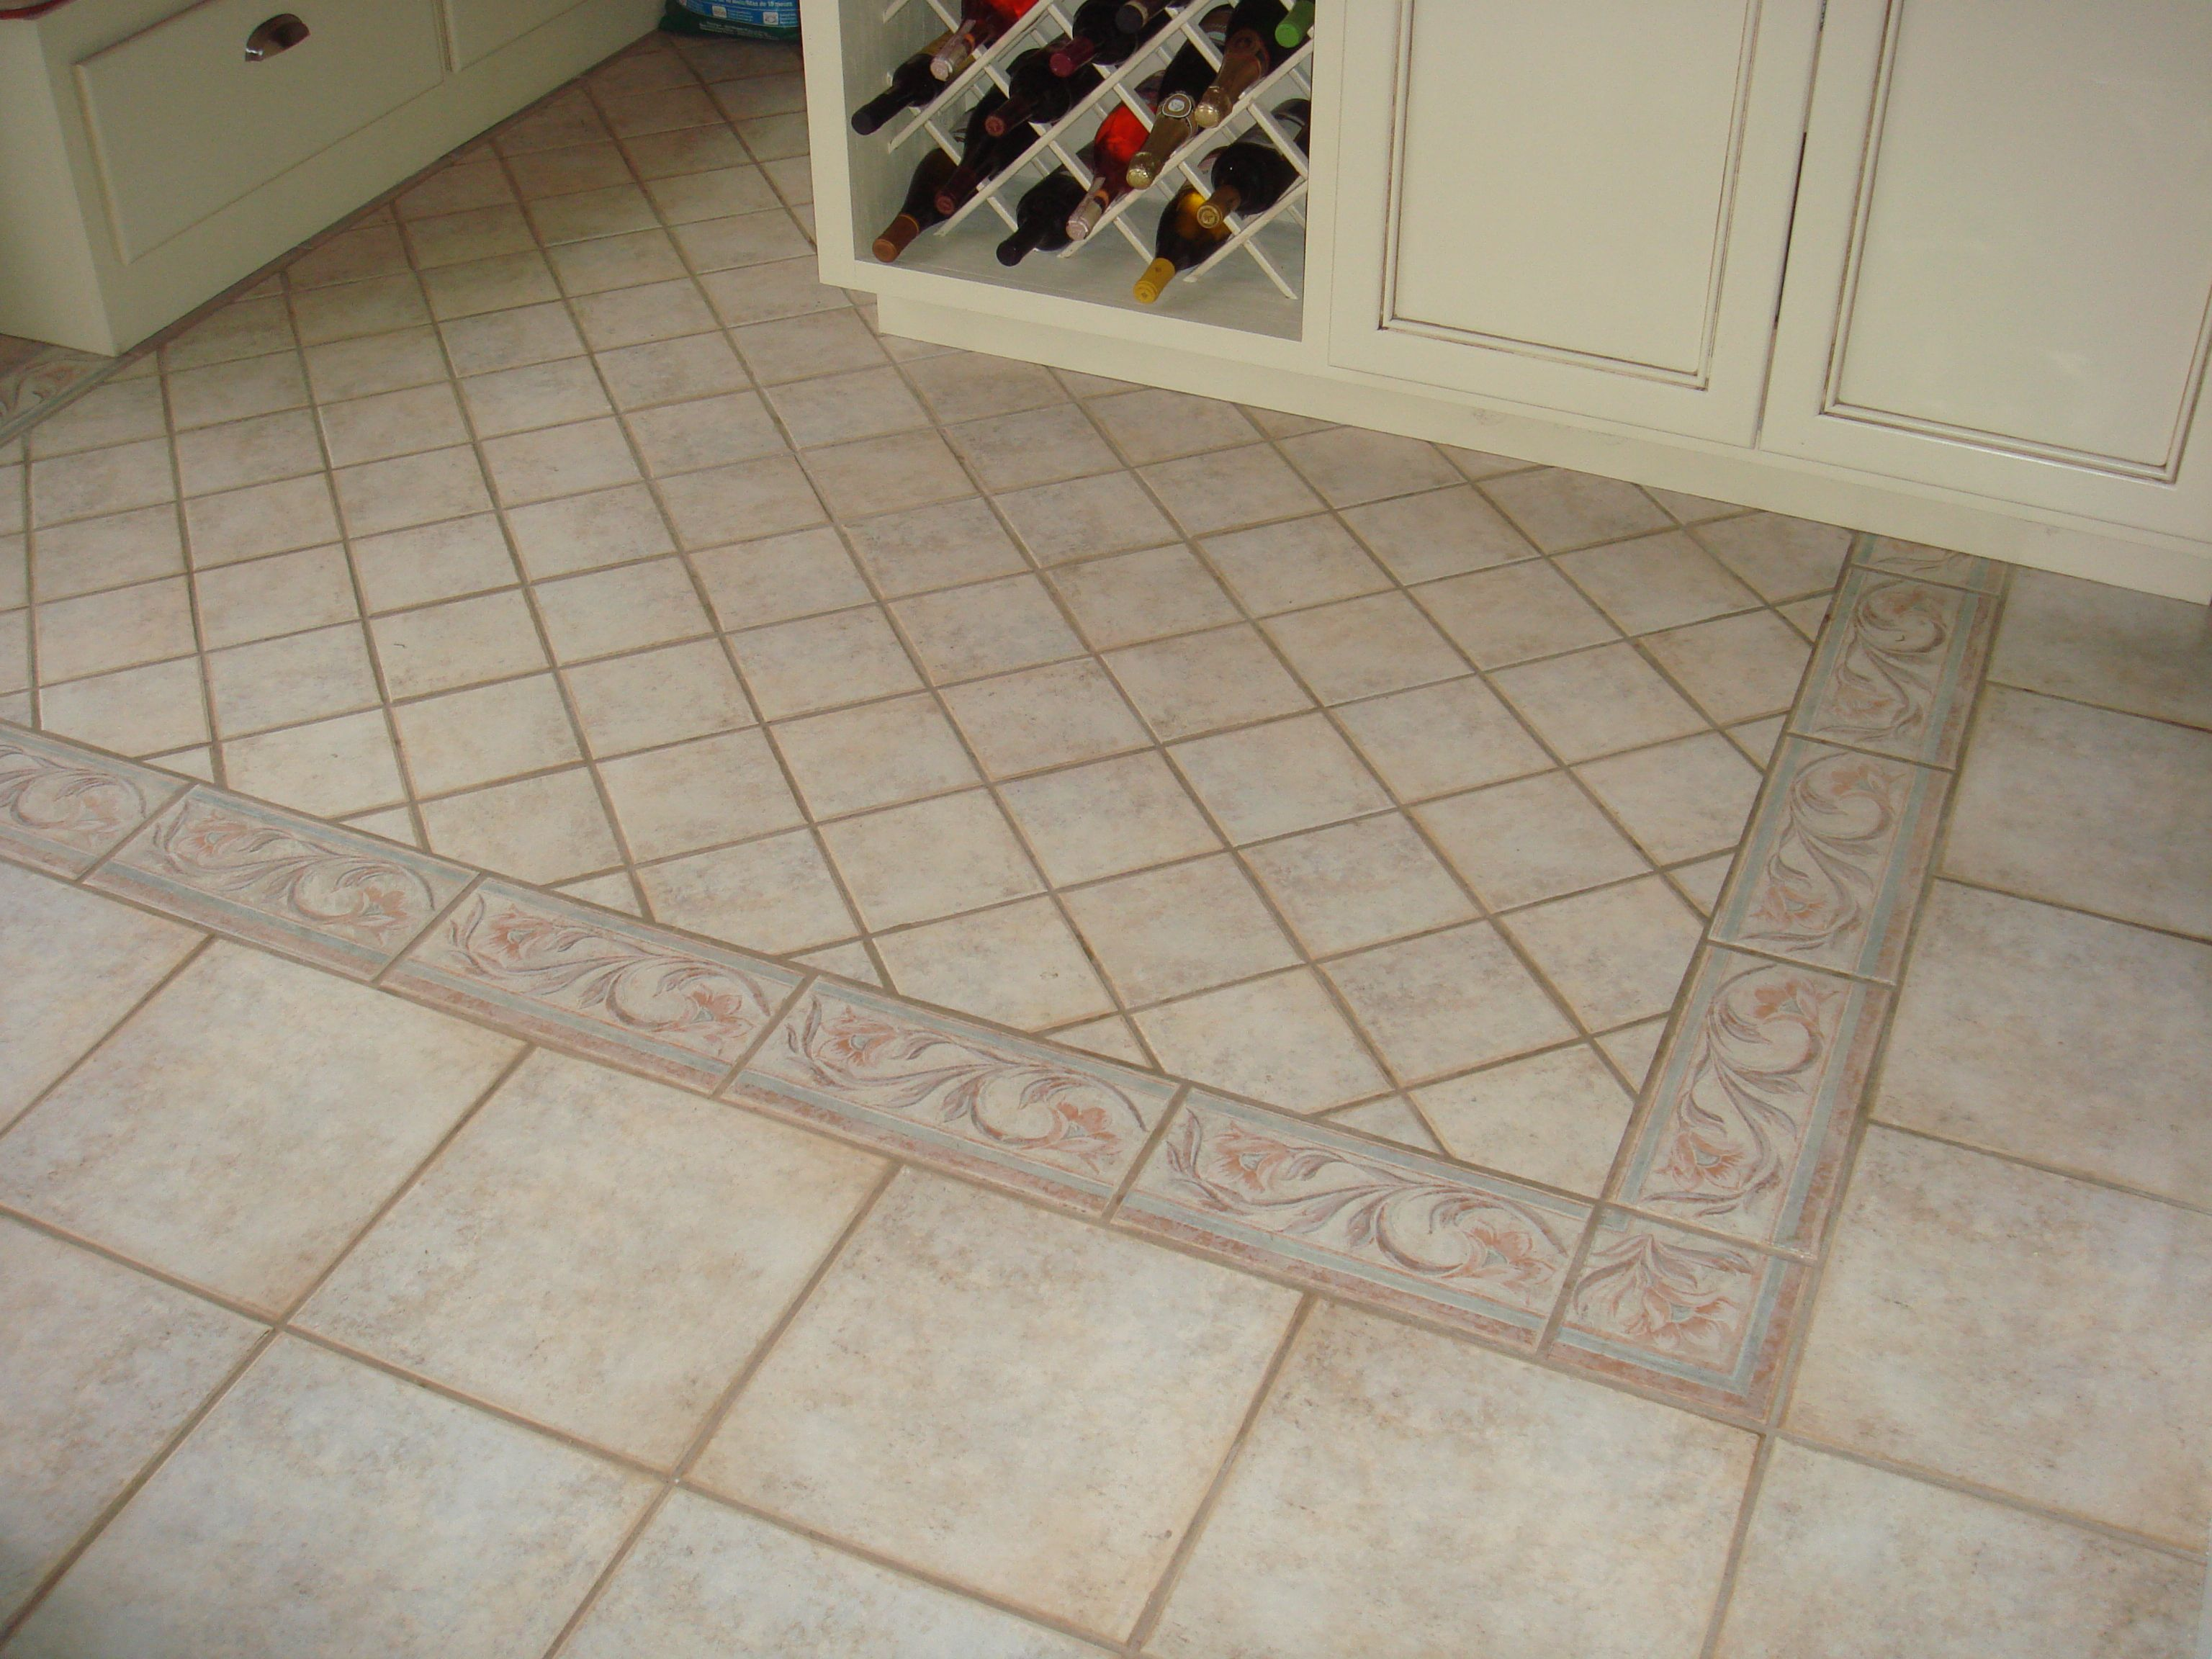 1000+ images about tiling on Pinterest - ^